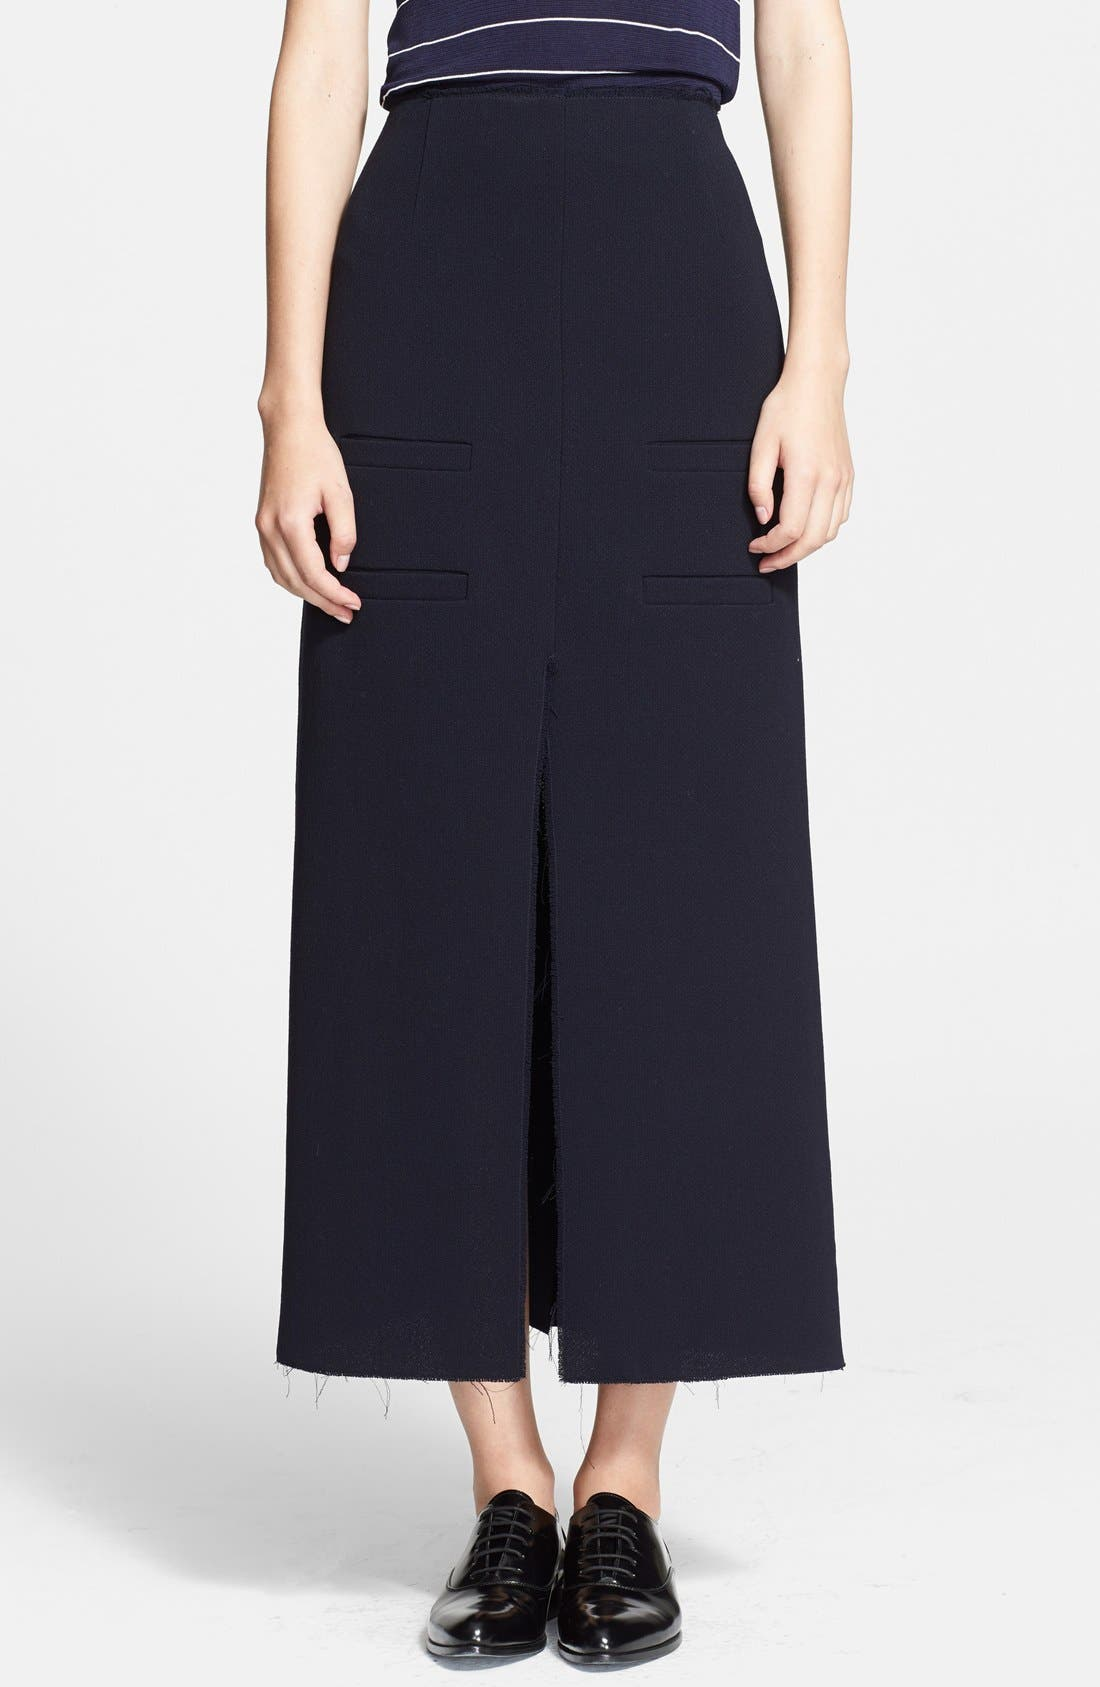 Alternate Image 1 Selected - J.W.ANDERSON Stretch Crepe Midi Skirt